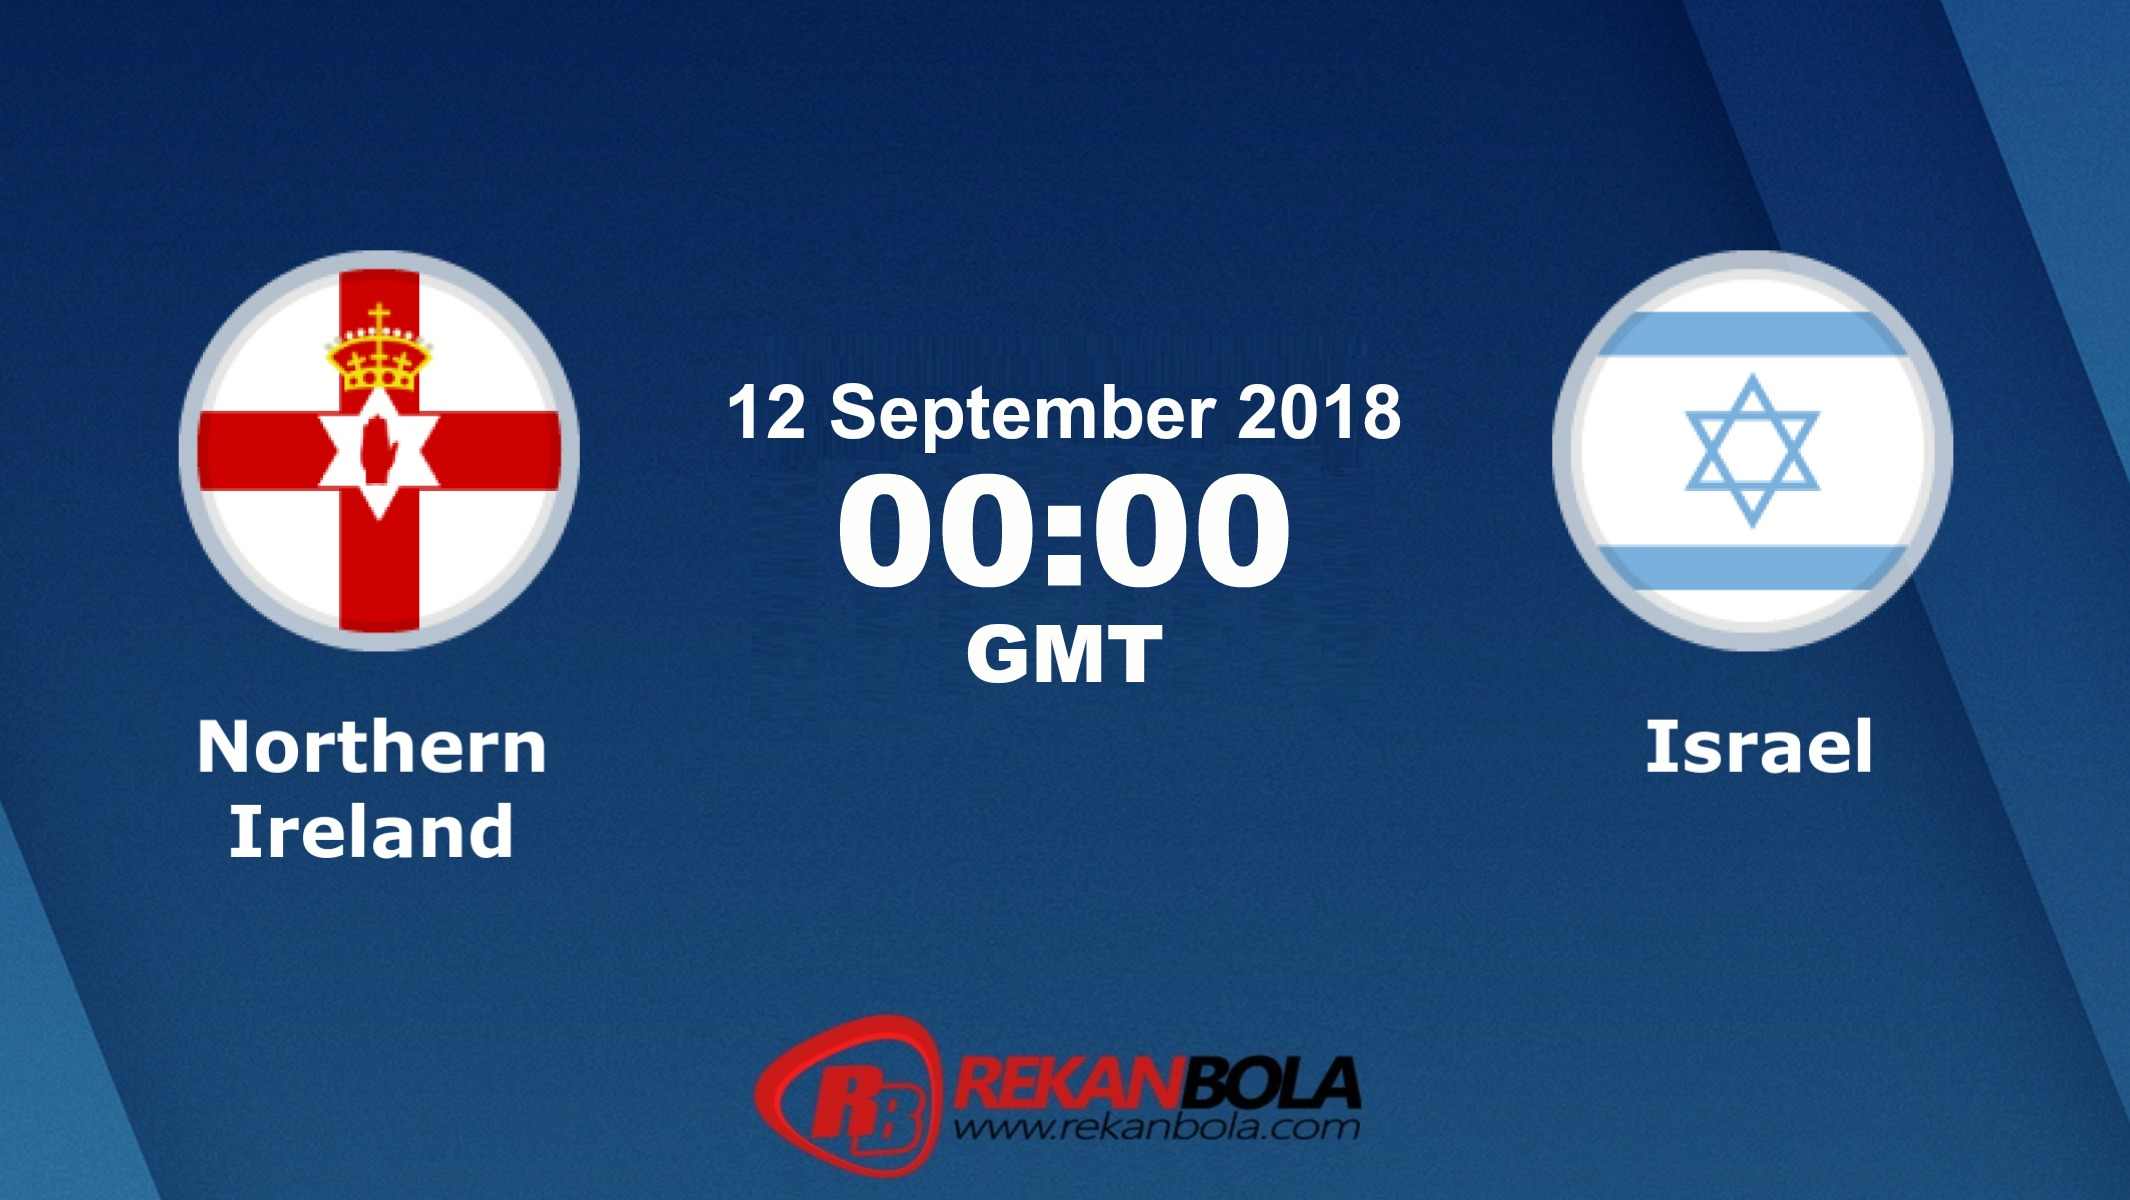 Nonton Siaran Live Streaming Irlandia Utara Vs Israel 12 September 2018